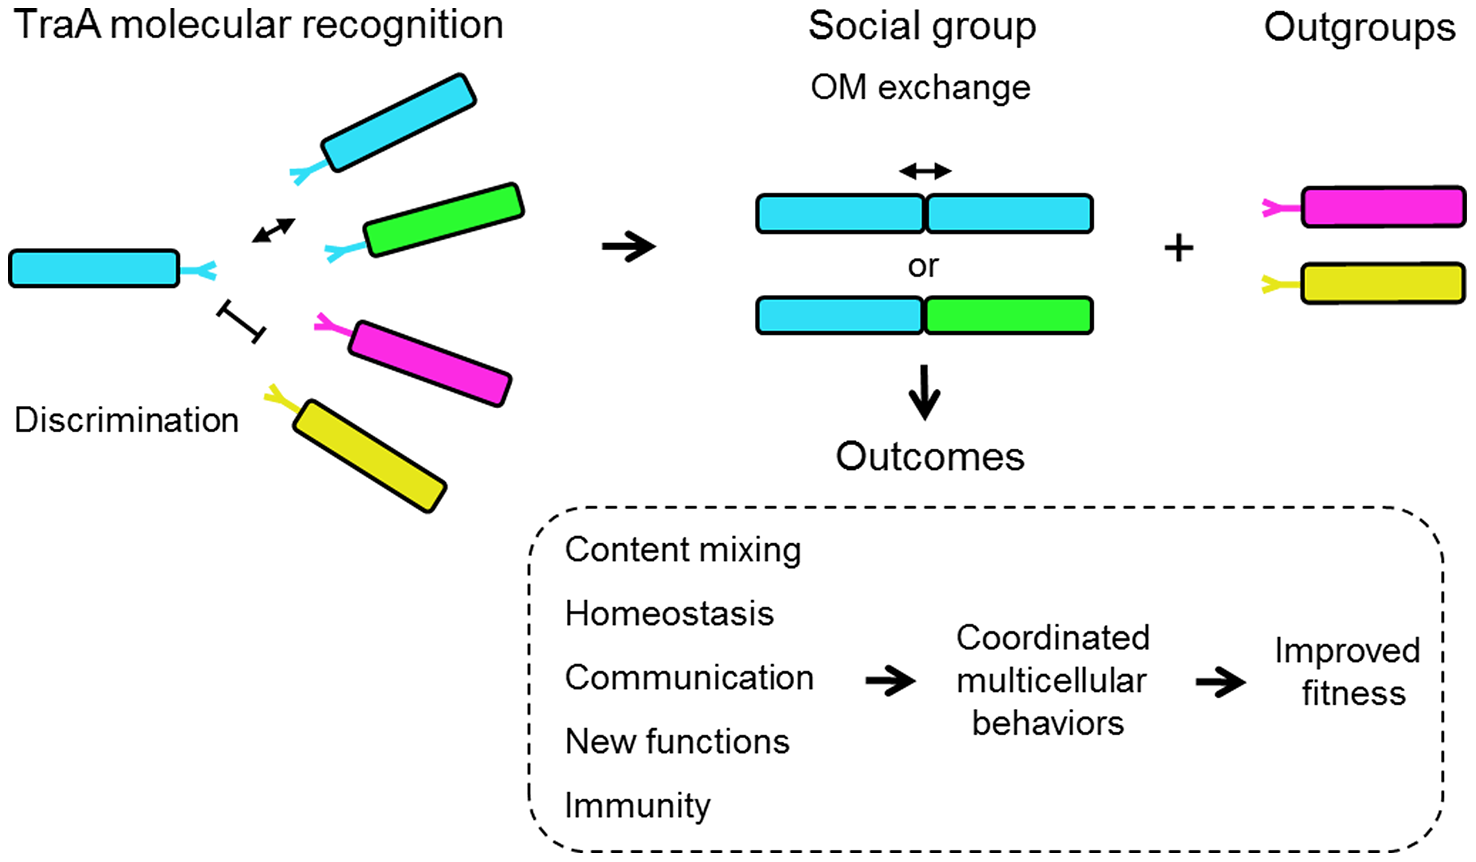 Schematic overview for how TraA-mediated cell-cell interactions can contribute toward myxobacterial social behaviors.